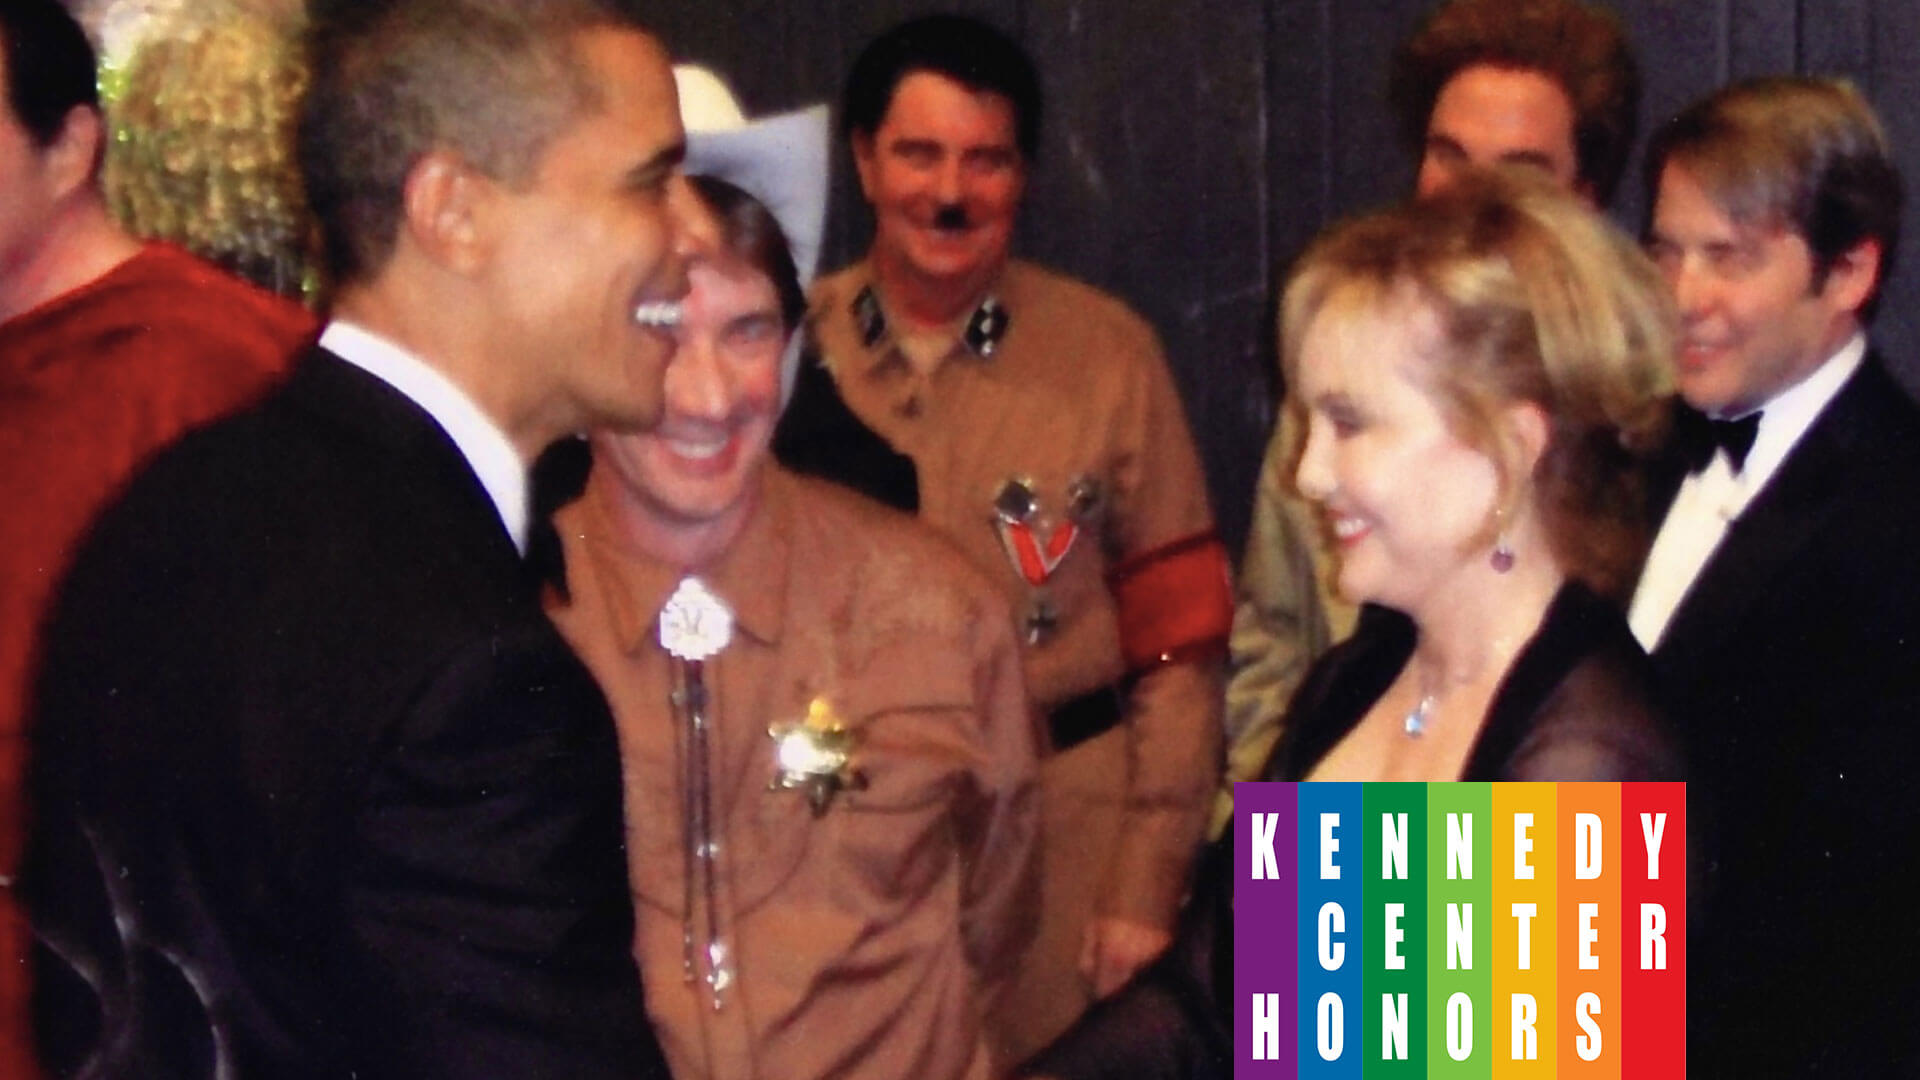 President Barack Obama congratulating Susan Stroman on her Direction and Choreography at The Kennedy Center Honors.